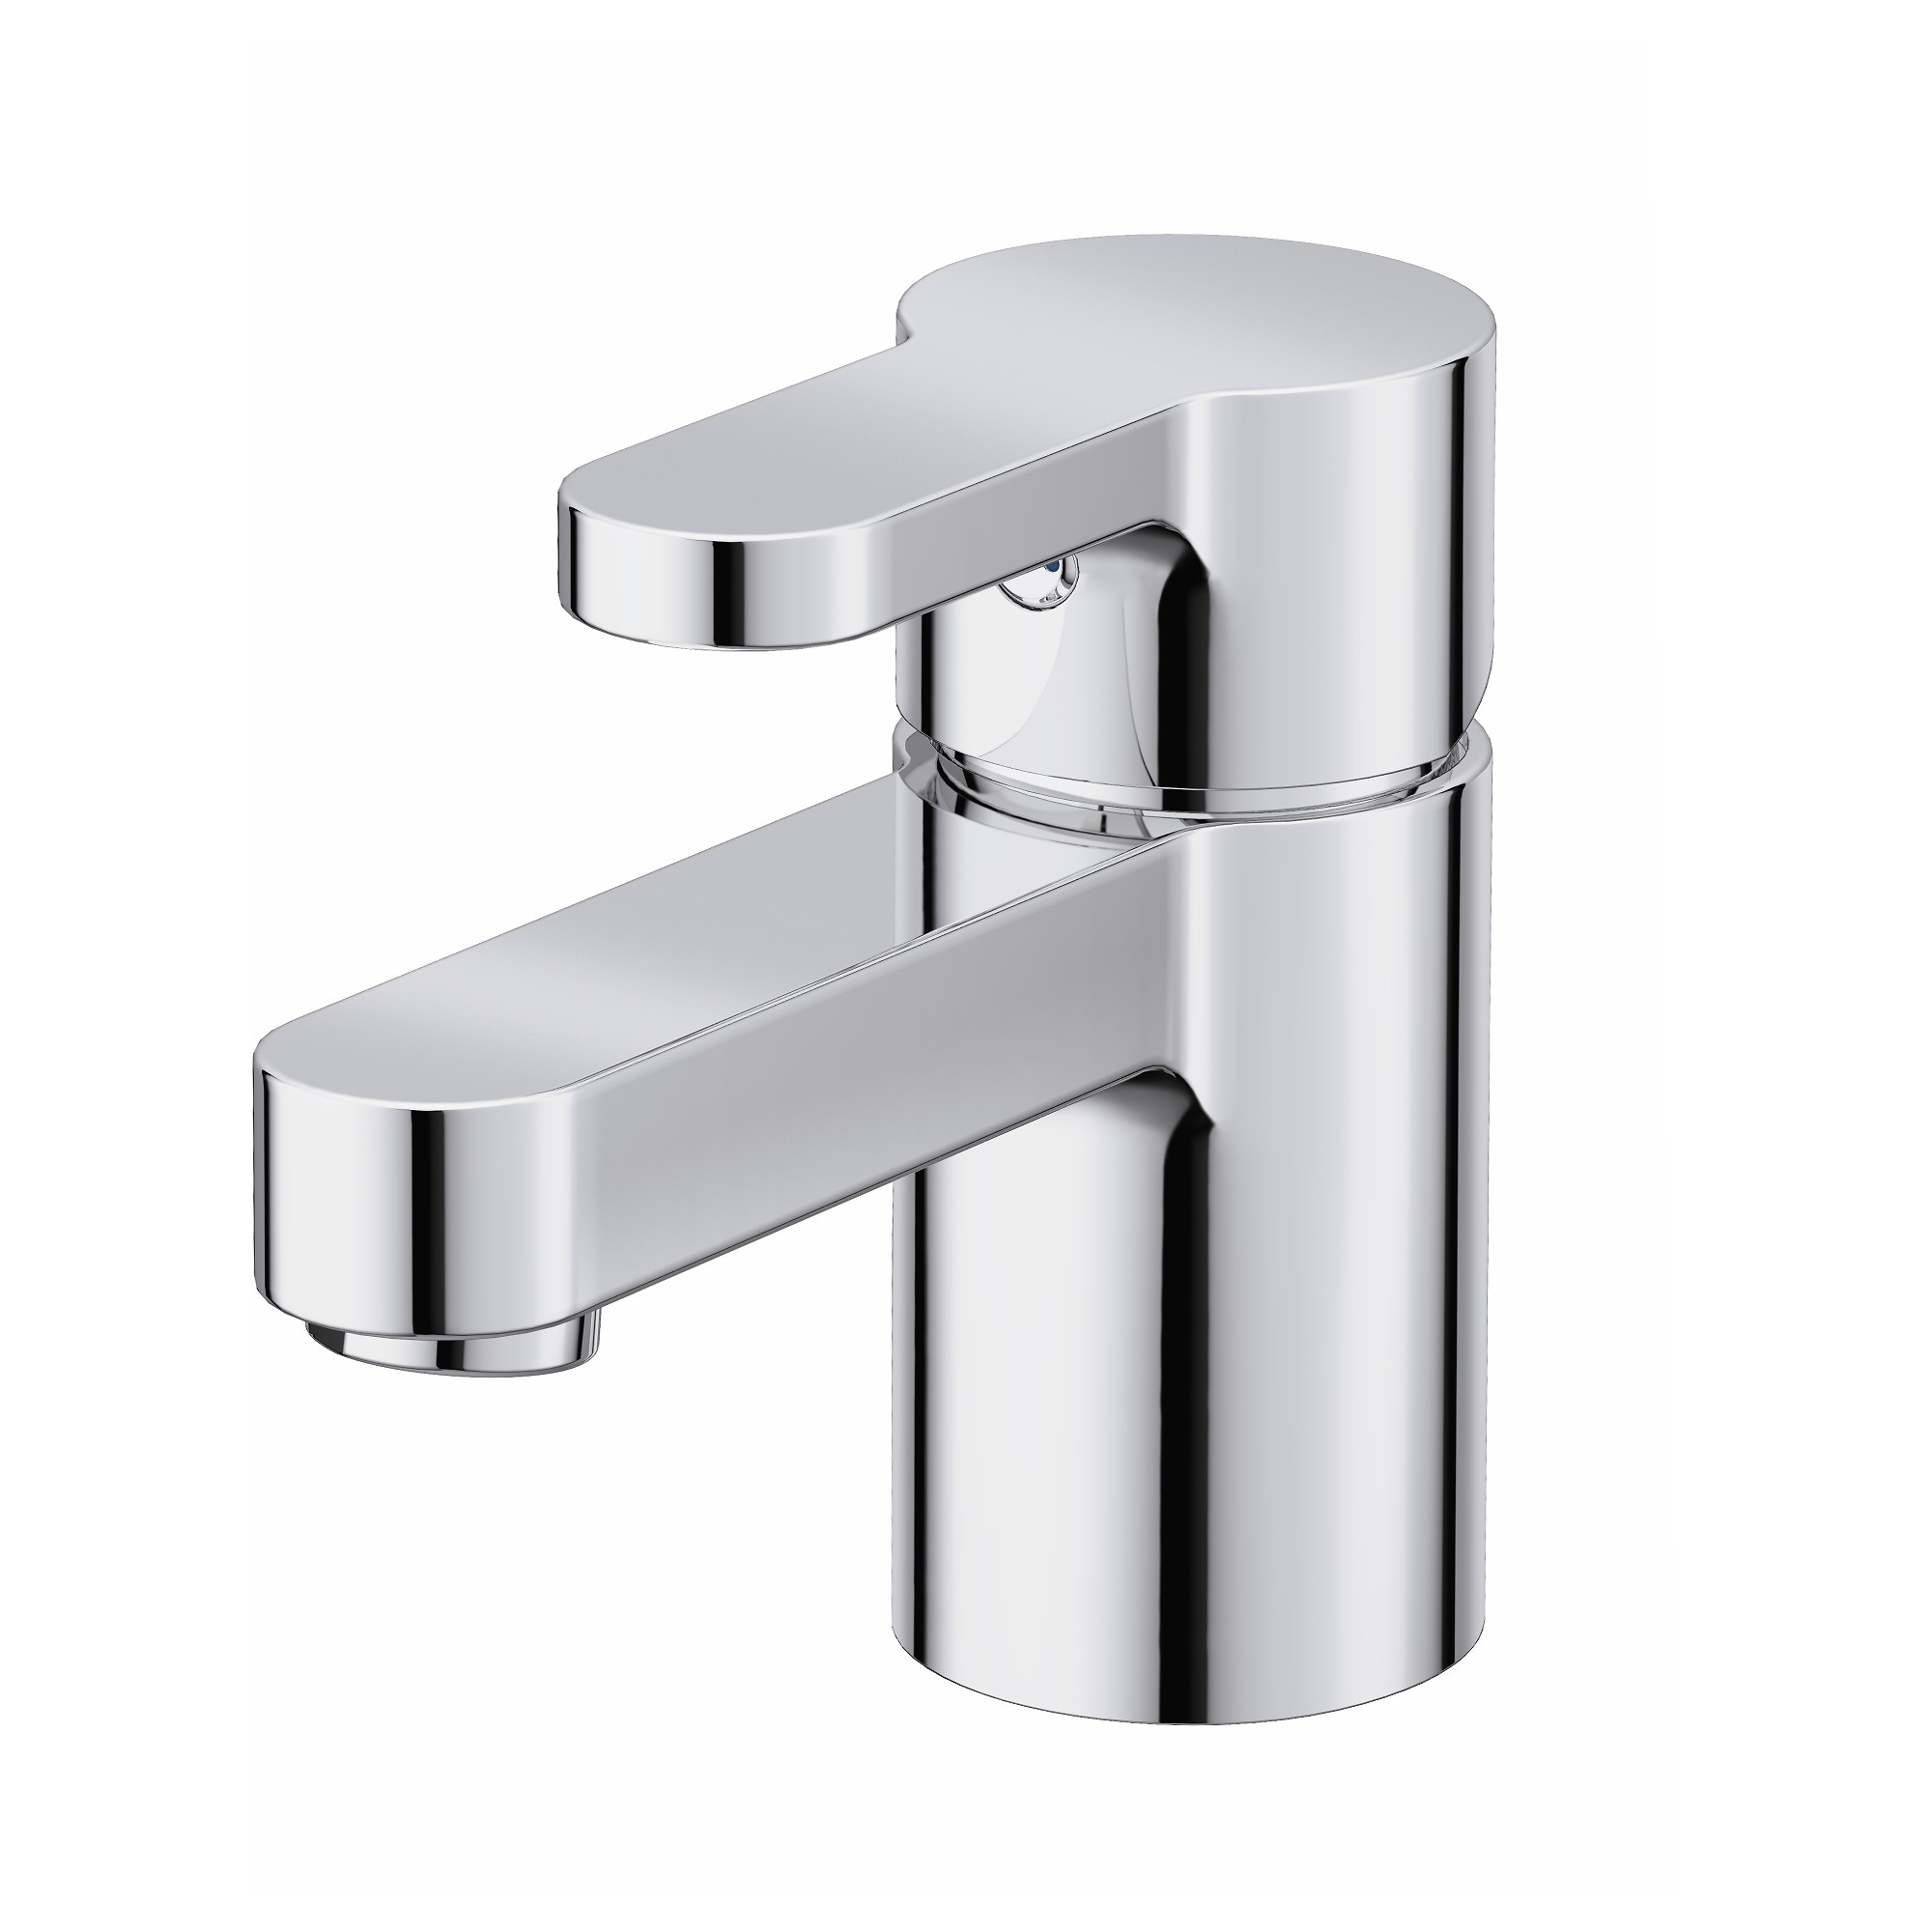 ENSEN Bath faucet with strainer IKEA #1: PE S5 JPG